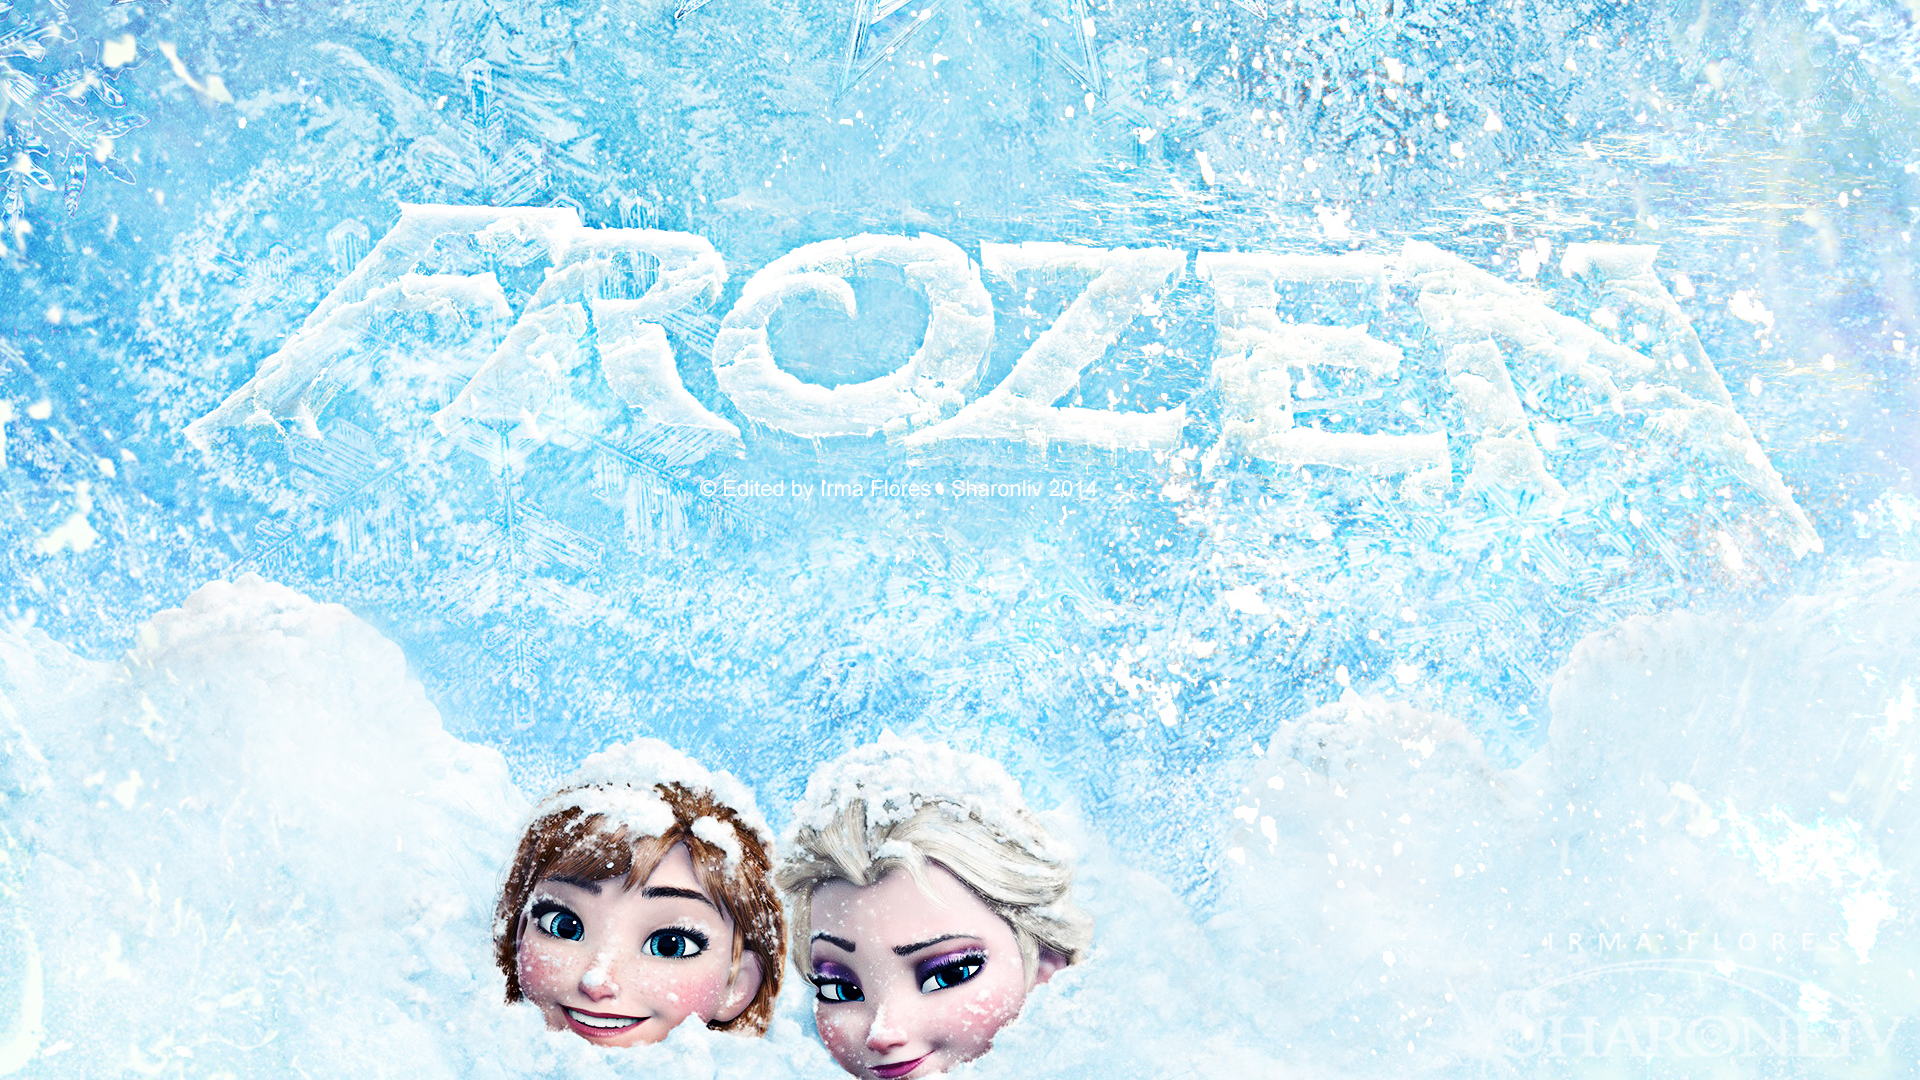 The Most Amazing amp Best Frozen Wallpapers On The Web